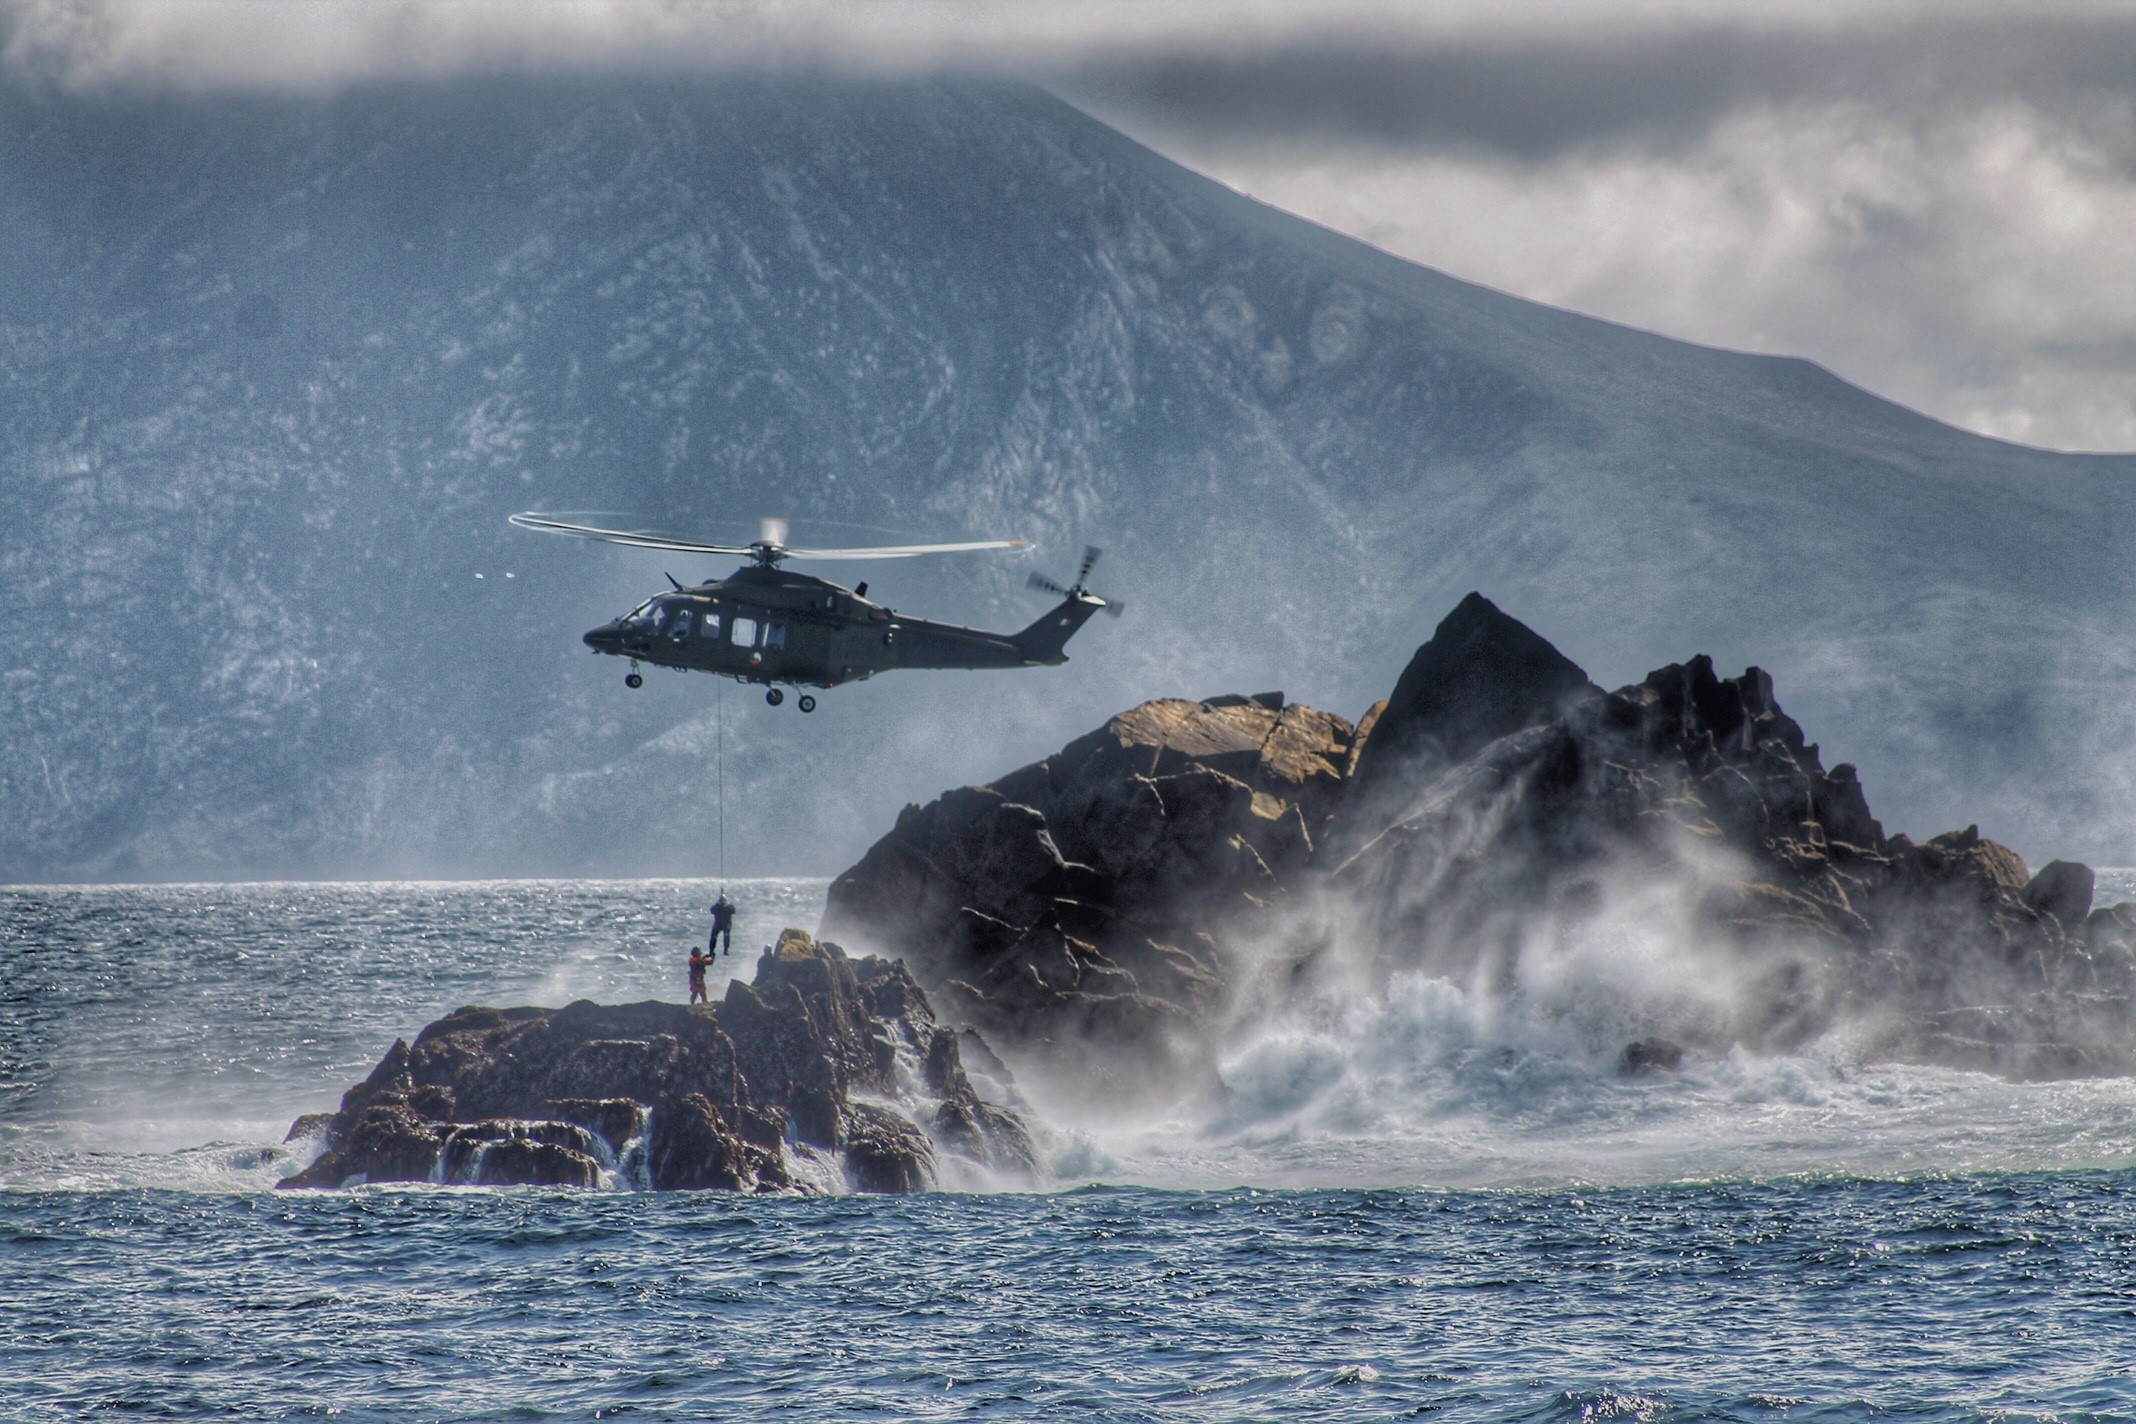 Helicopter winching by Defence Forces at an island off the coast